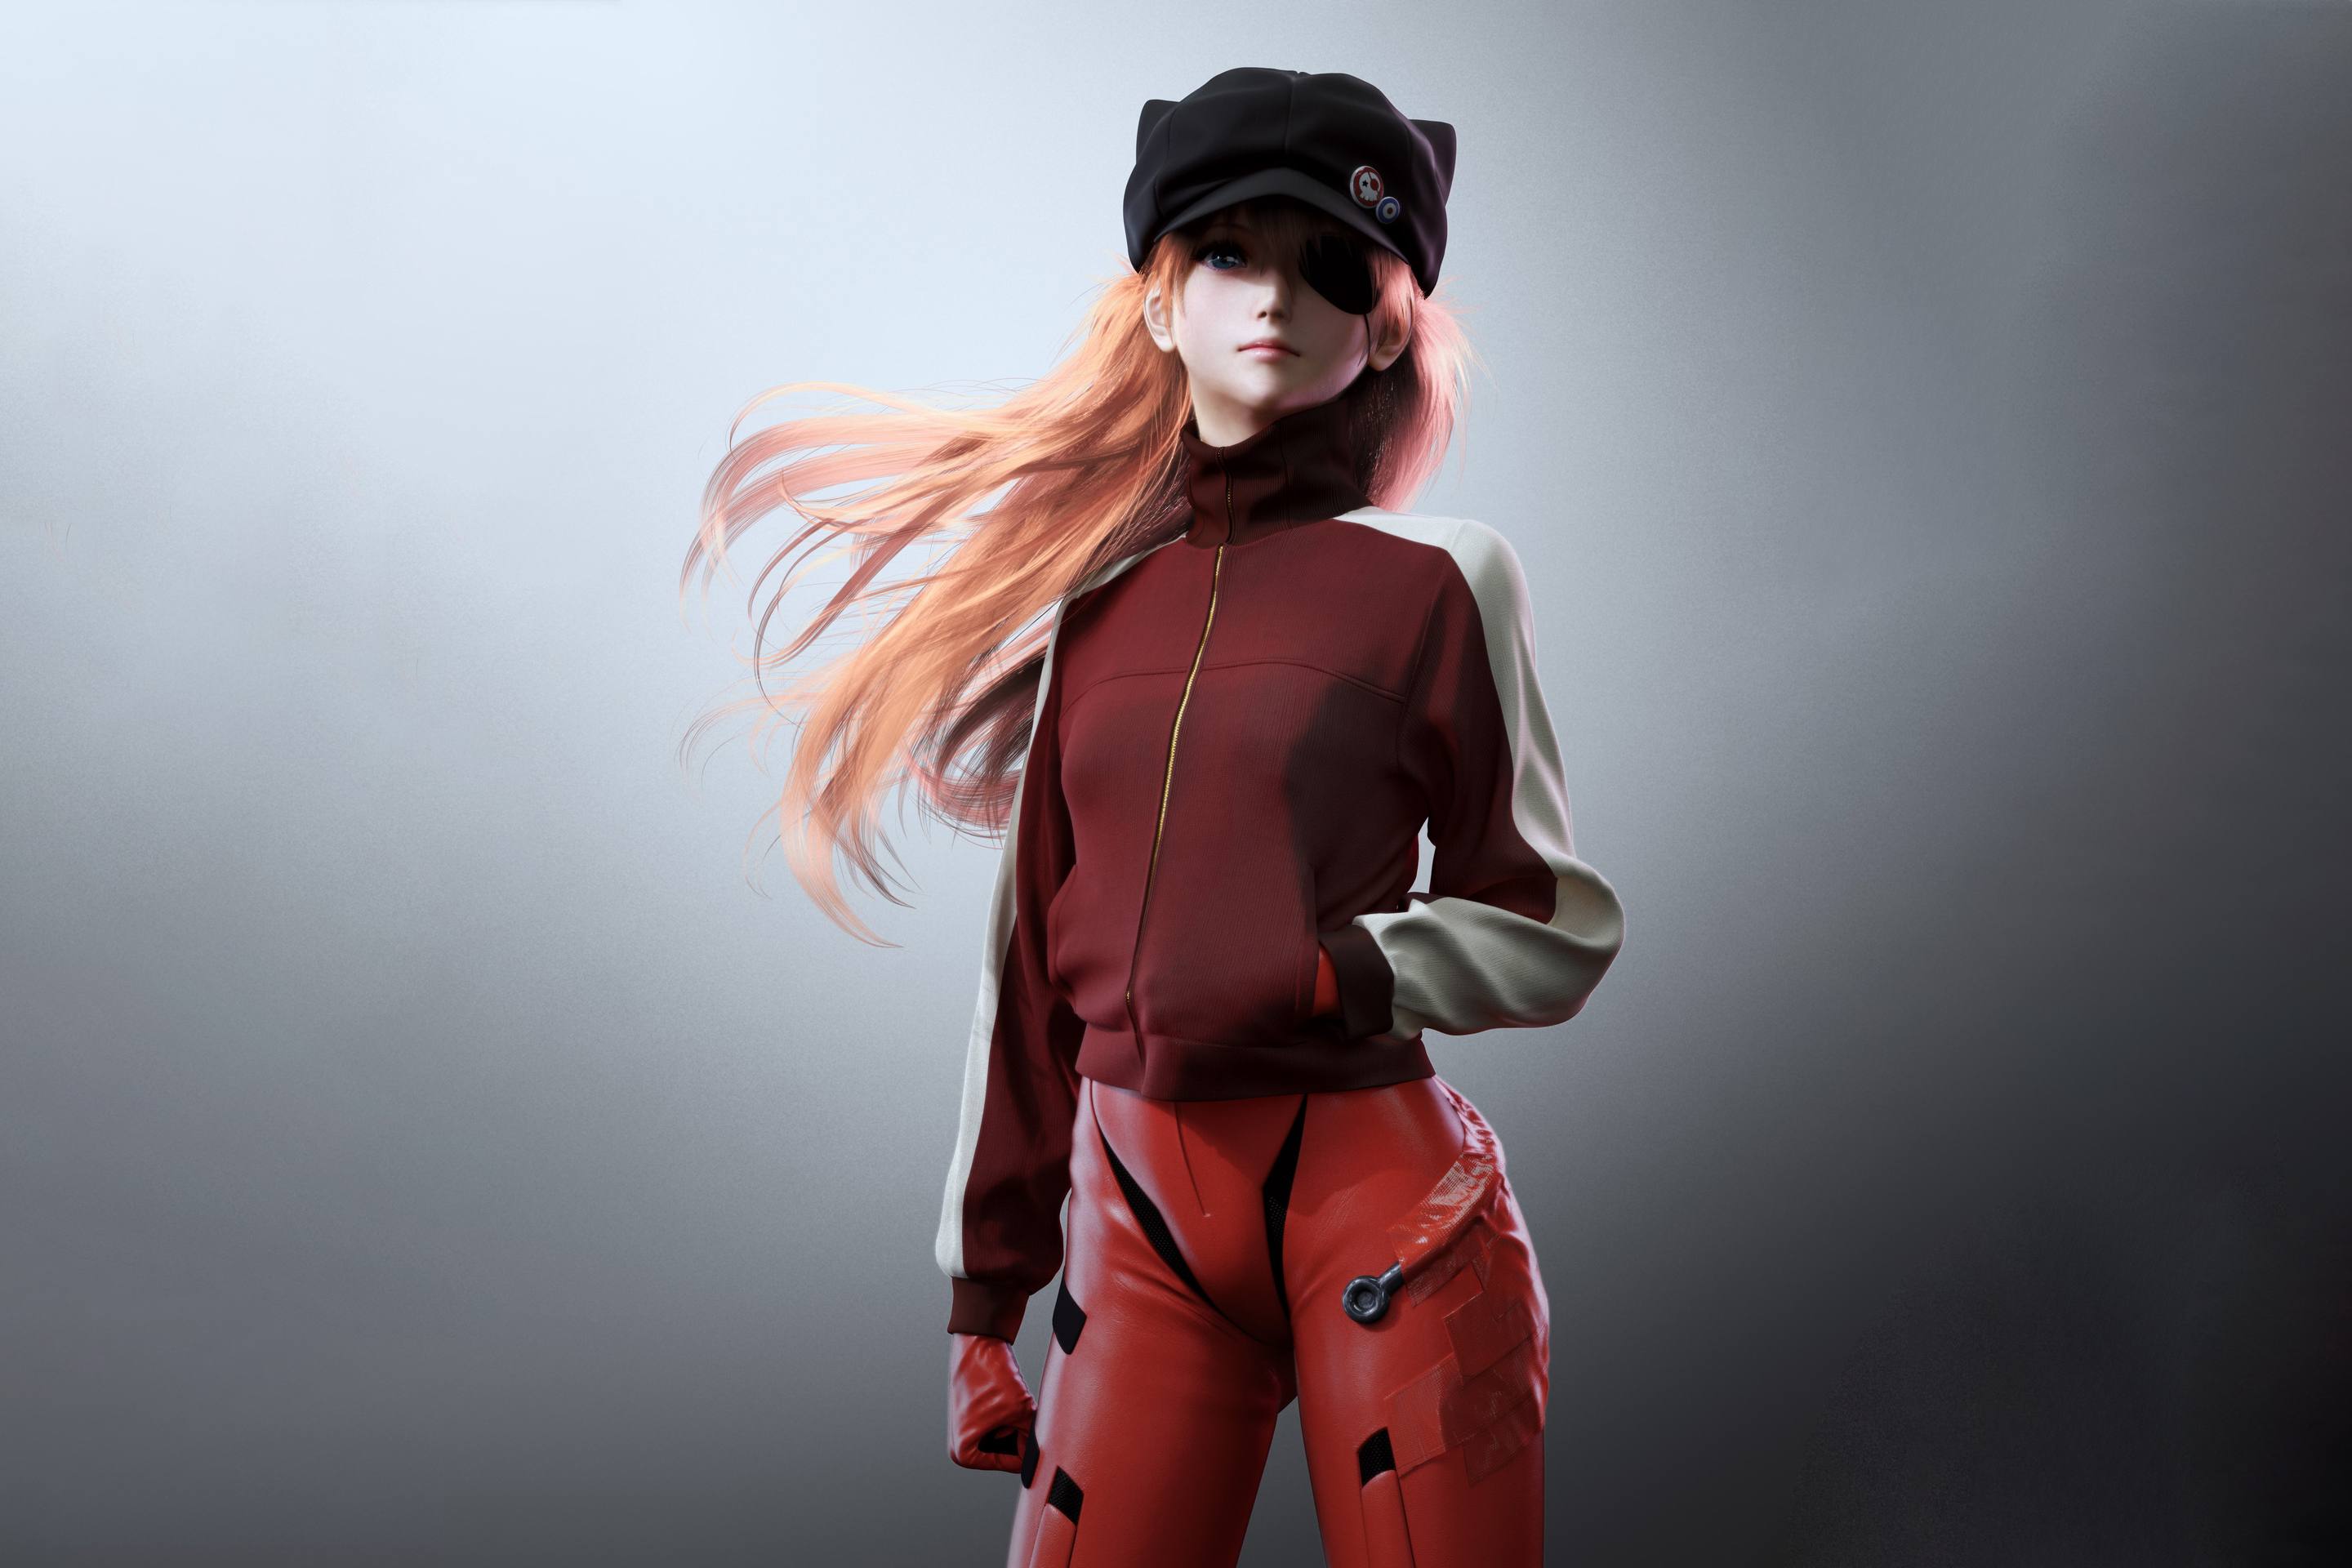 Cute Animated Wallpapers For Android Neon Genesis Evangelion Asuka Langley Sohryu Hd Anime 4k